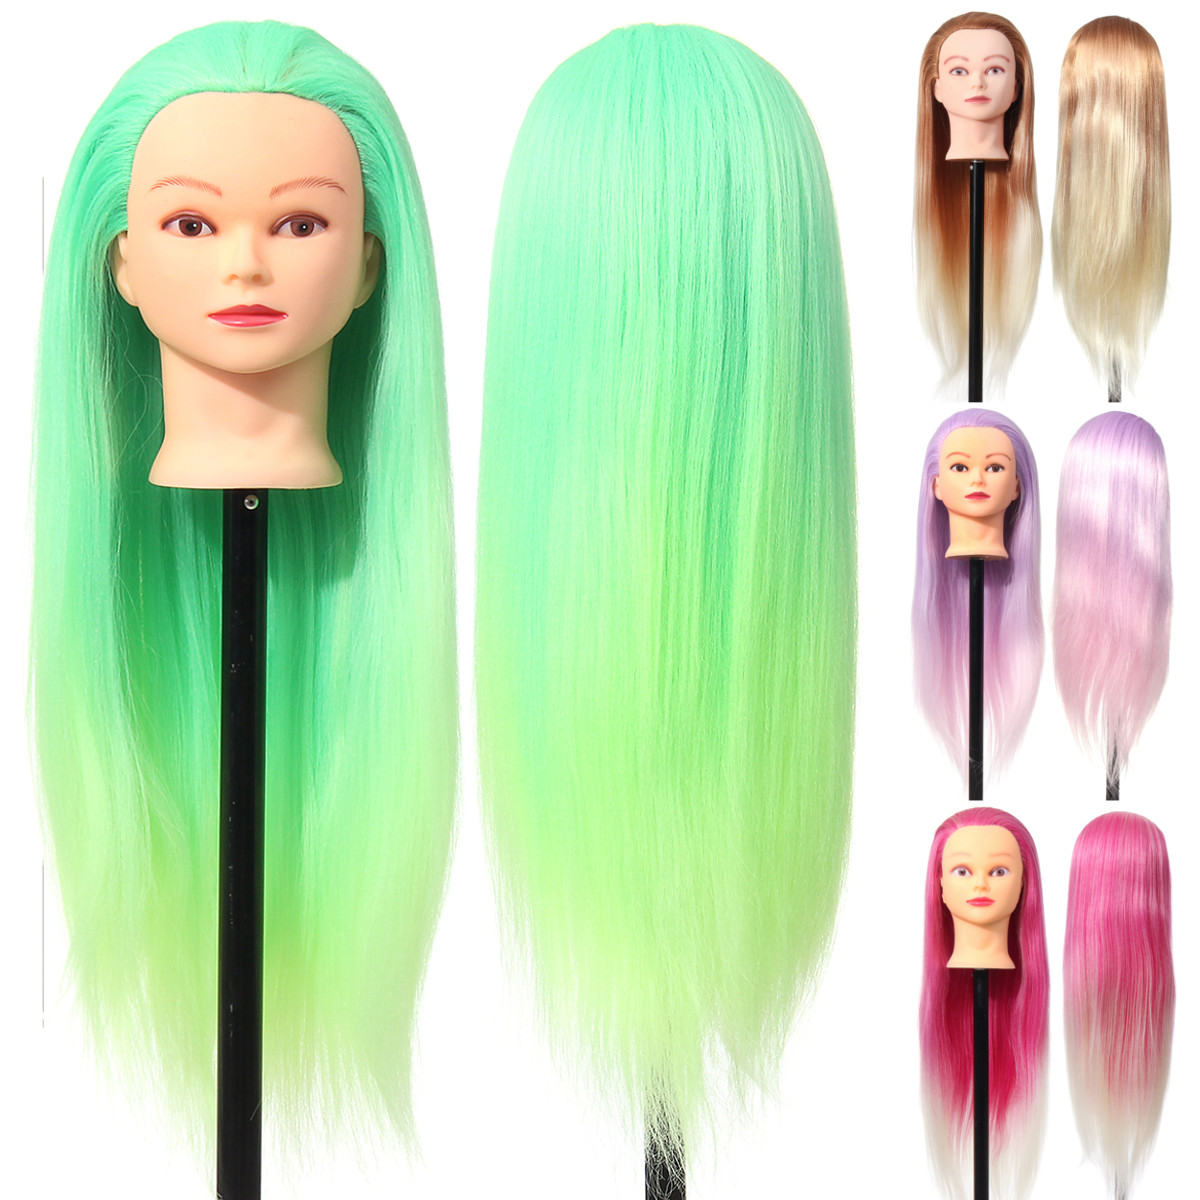 27'' Colorful Mannequin Head Hair Hairdressing Practice Training